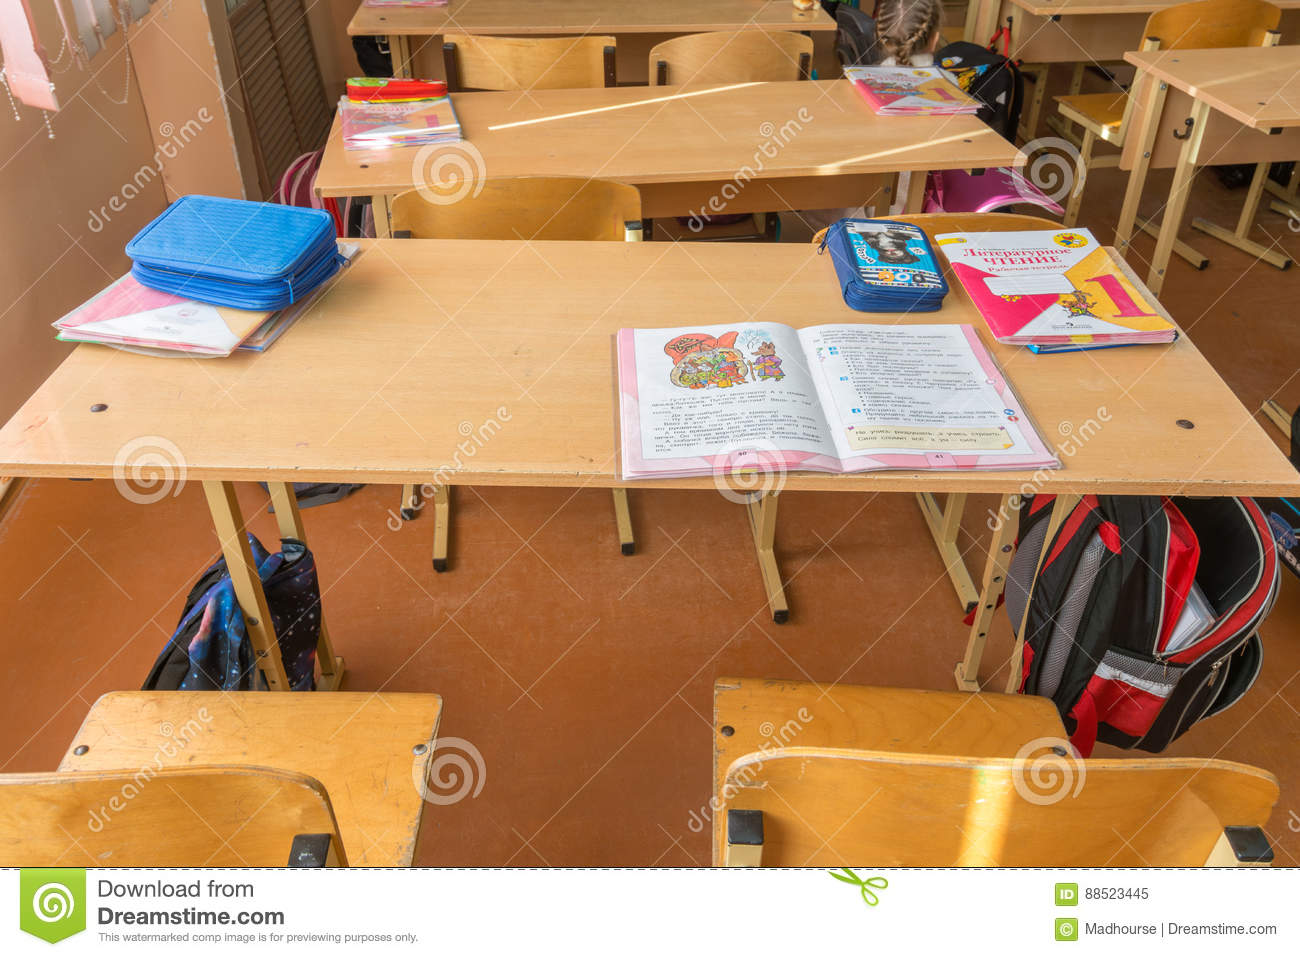 Download Top View Of A Student In The Ordinary Russian School Desk Chairs  School Supplies Editorial